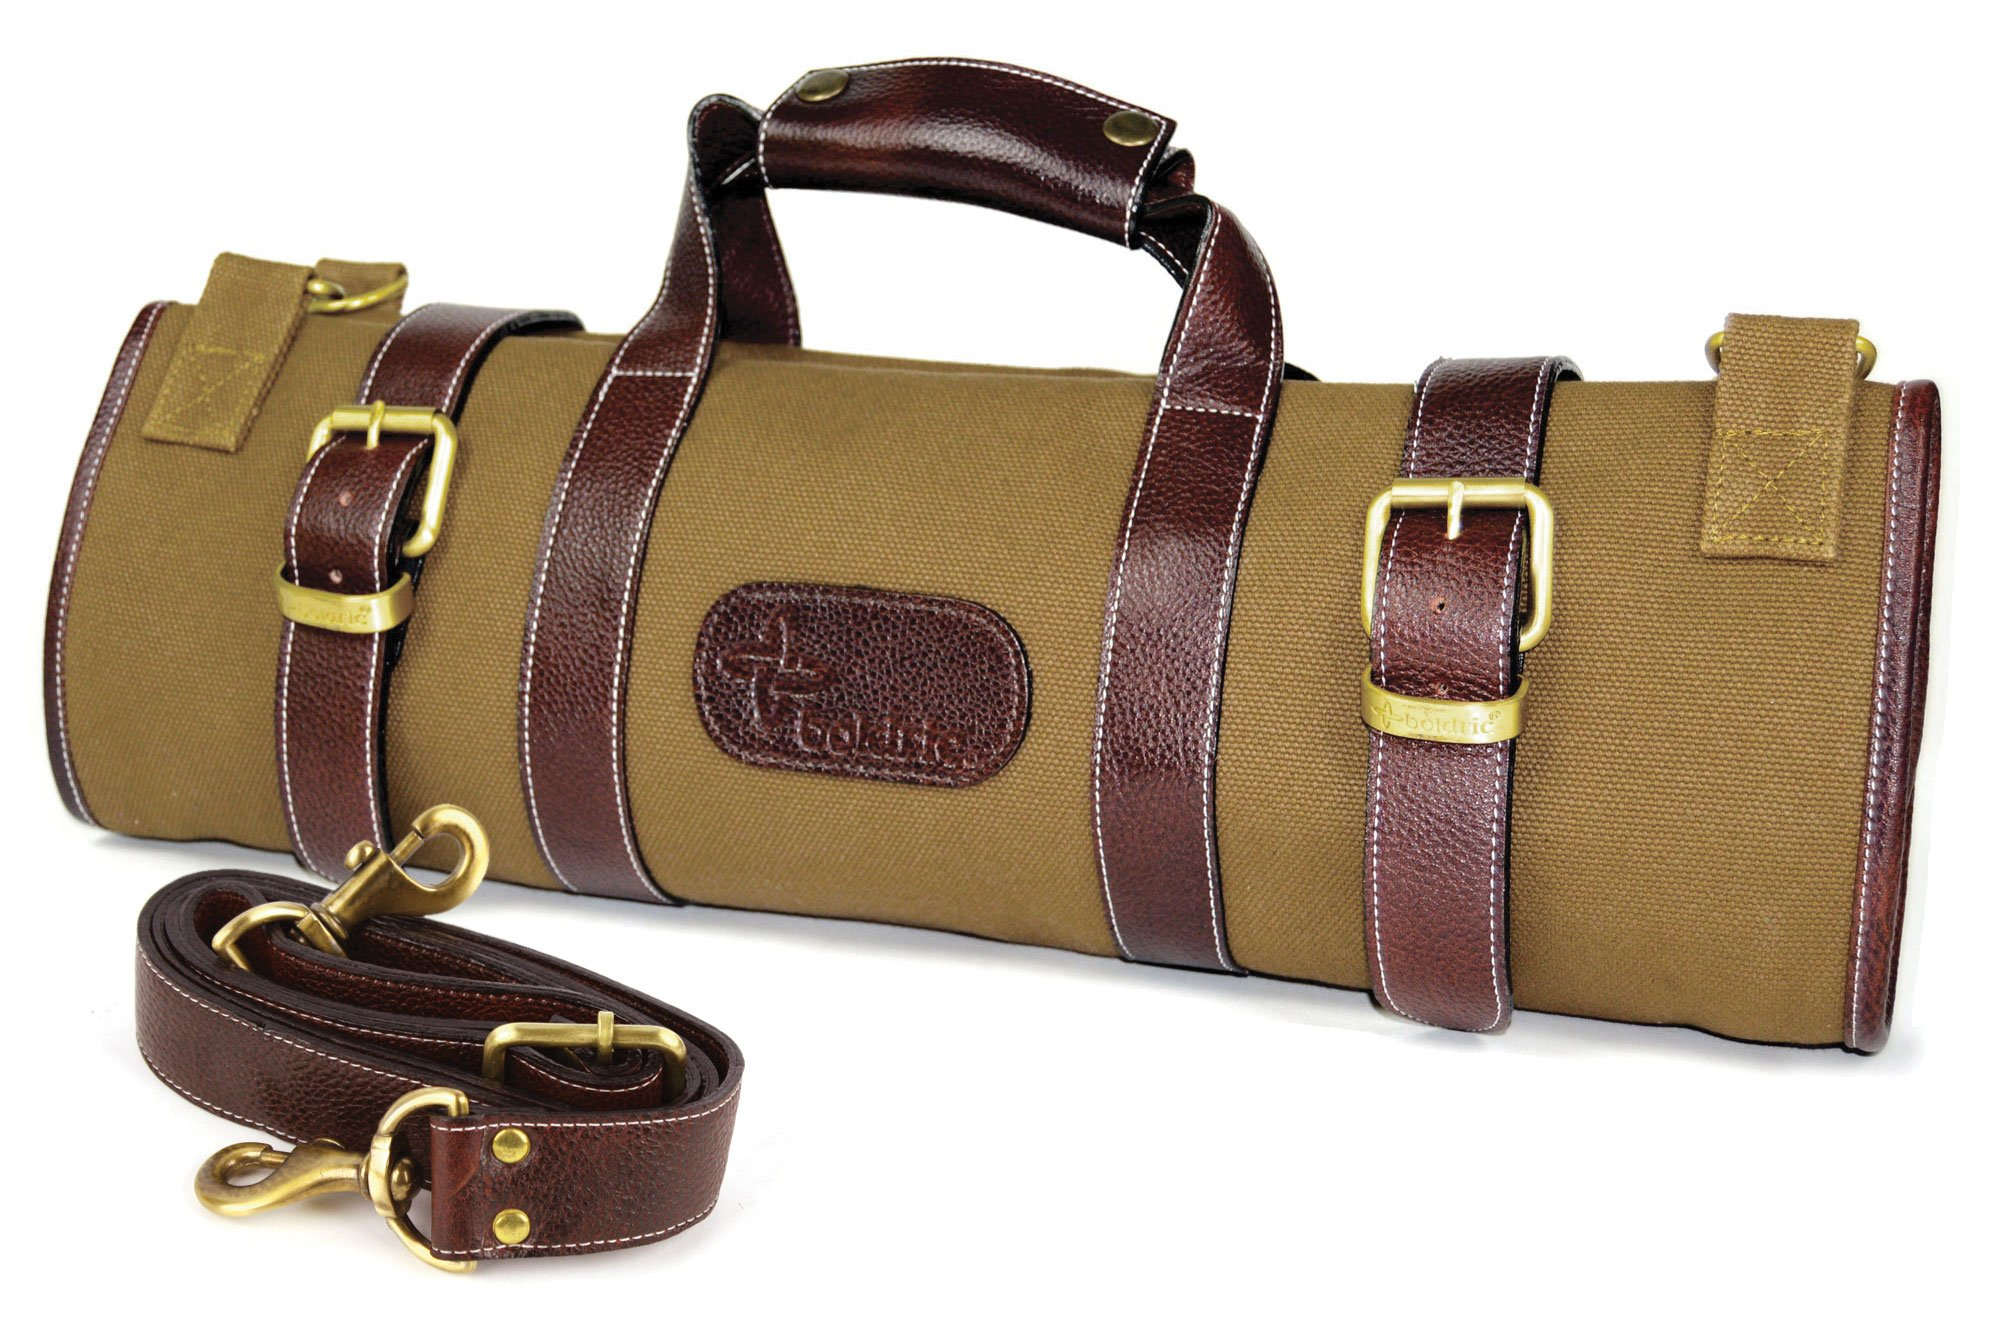 Boldric 17 Pocket Canvas Knife Bag (Khaki)